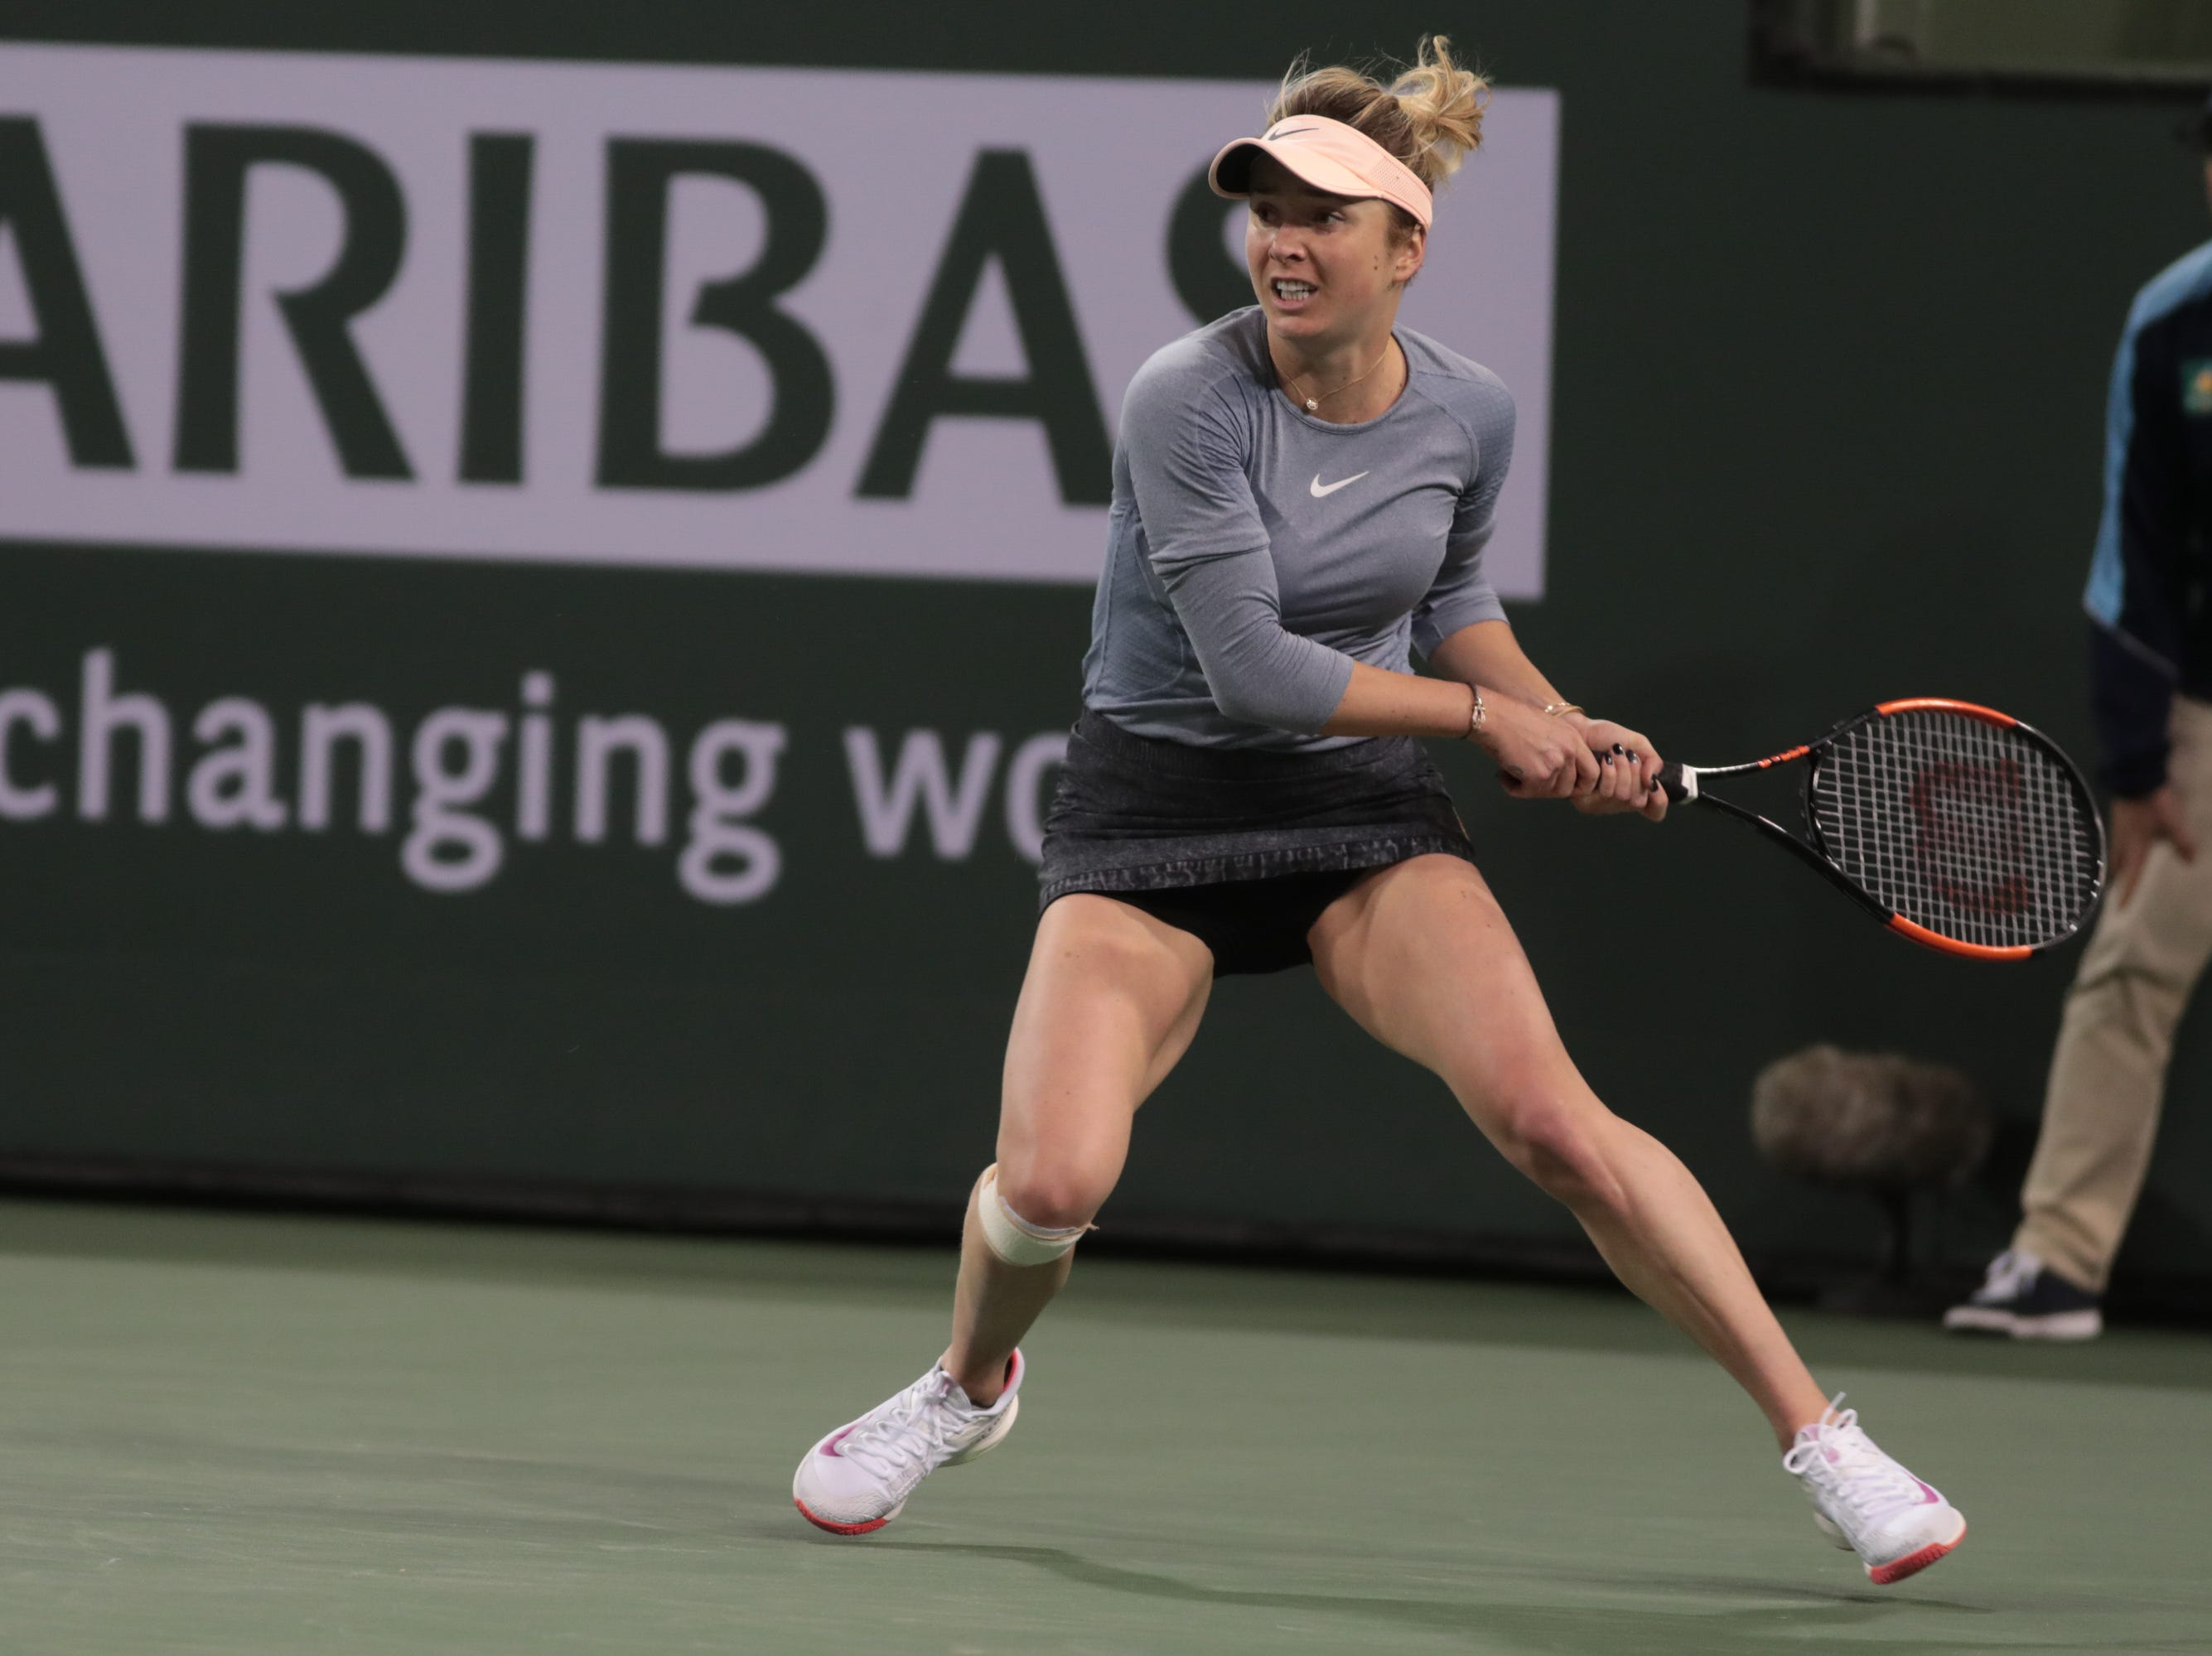 Elina Svitolina moves to a shot from Marketa Vondrousova at the BNP Paribas Open in Indian Wells, Calif., March 13, 2019.